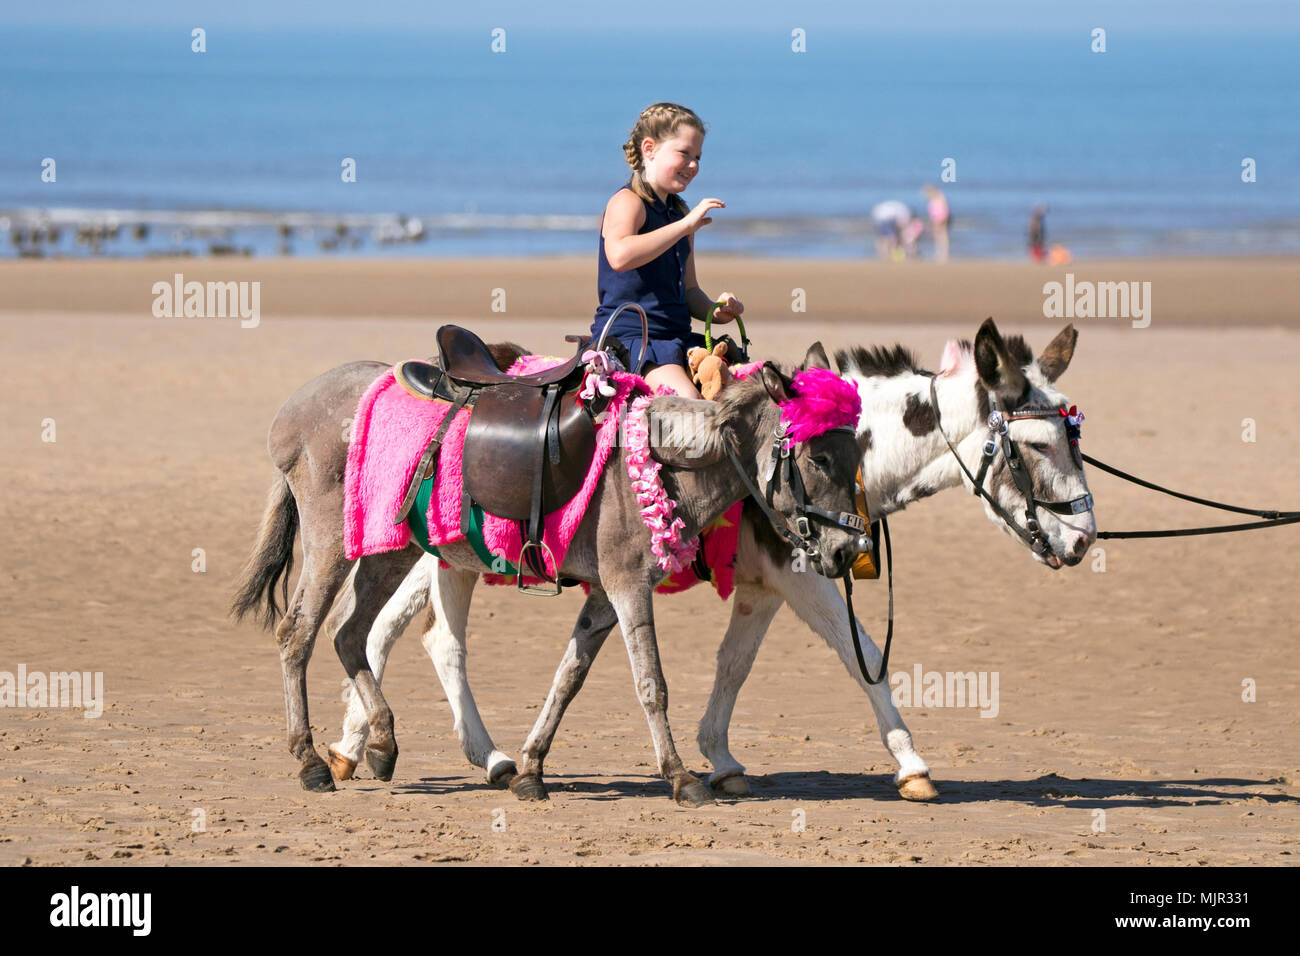 Blackpool, UK, 6 May 2018. Holidaymakers on Blackpool Seafront. 6th May 2018.  UK Weather.  Thousands of tourists and holidaymakers descend onto the beach on Blackpool seafront to soak up the beautiful sunshine and high temperatures.  Credit: Cernan Elias/Alamy Live News Stock Photo